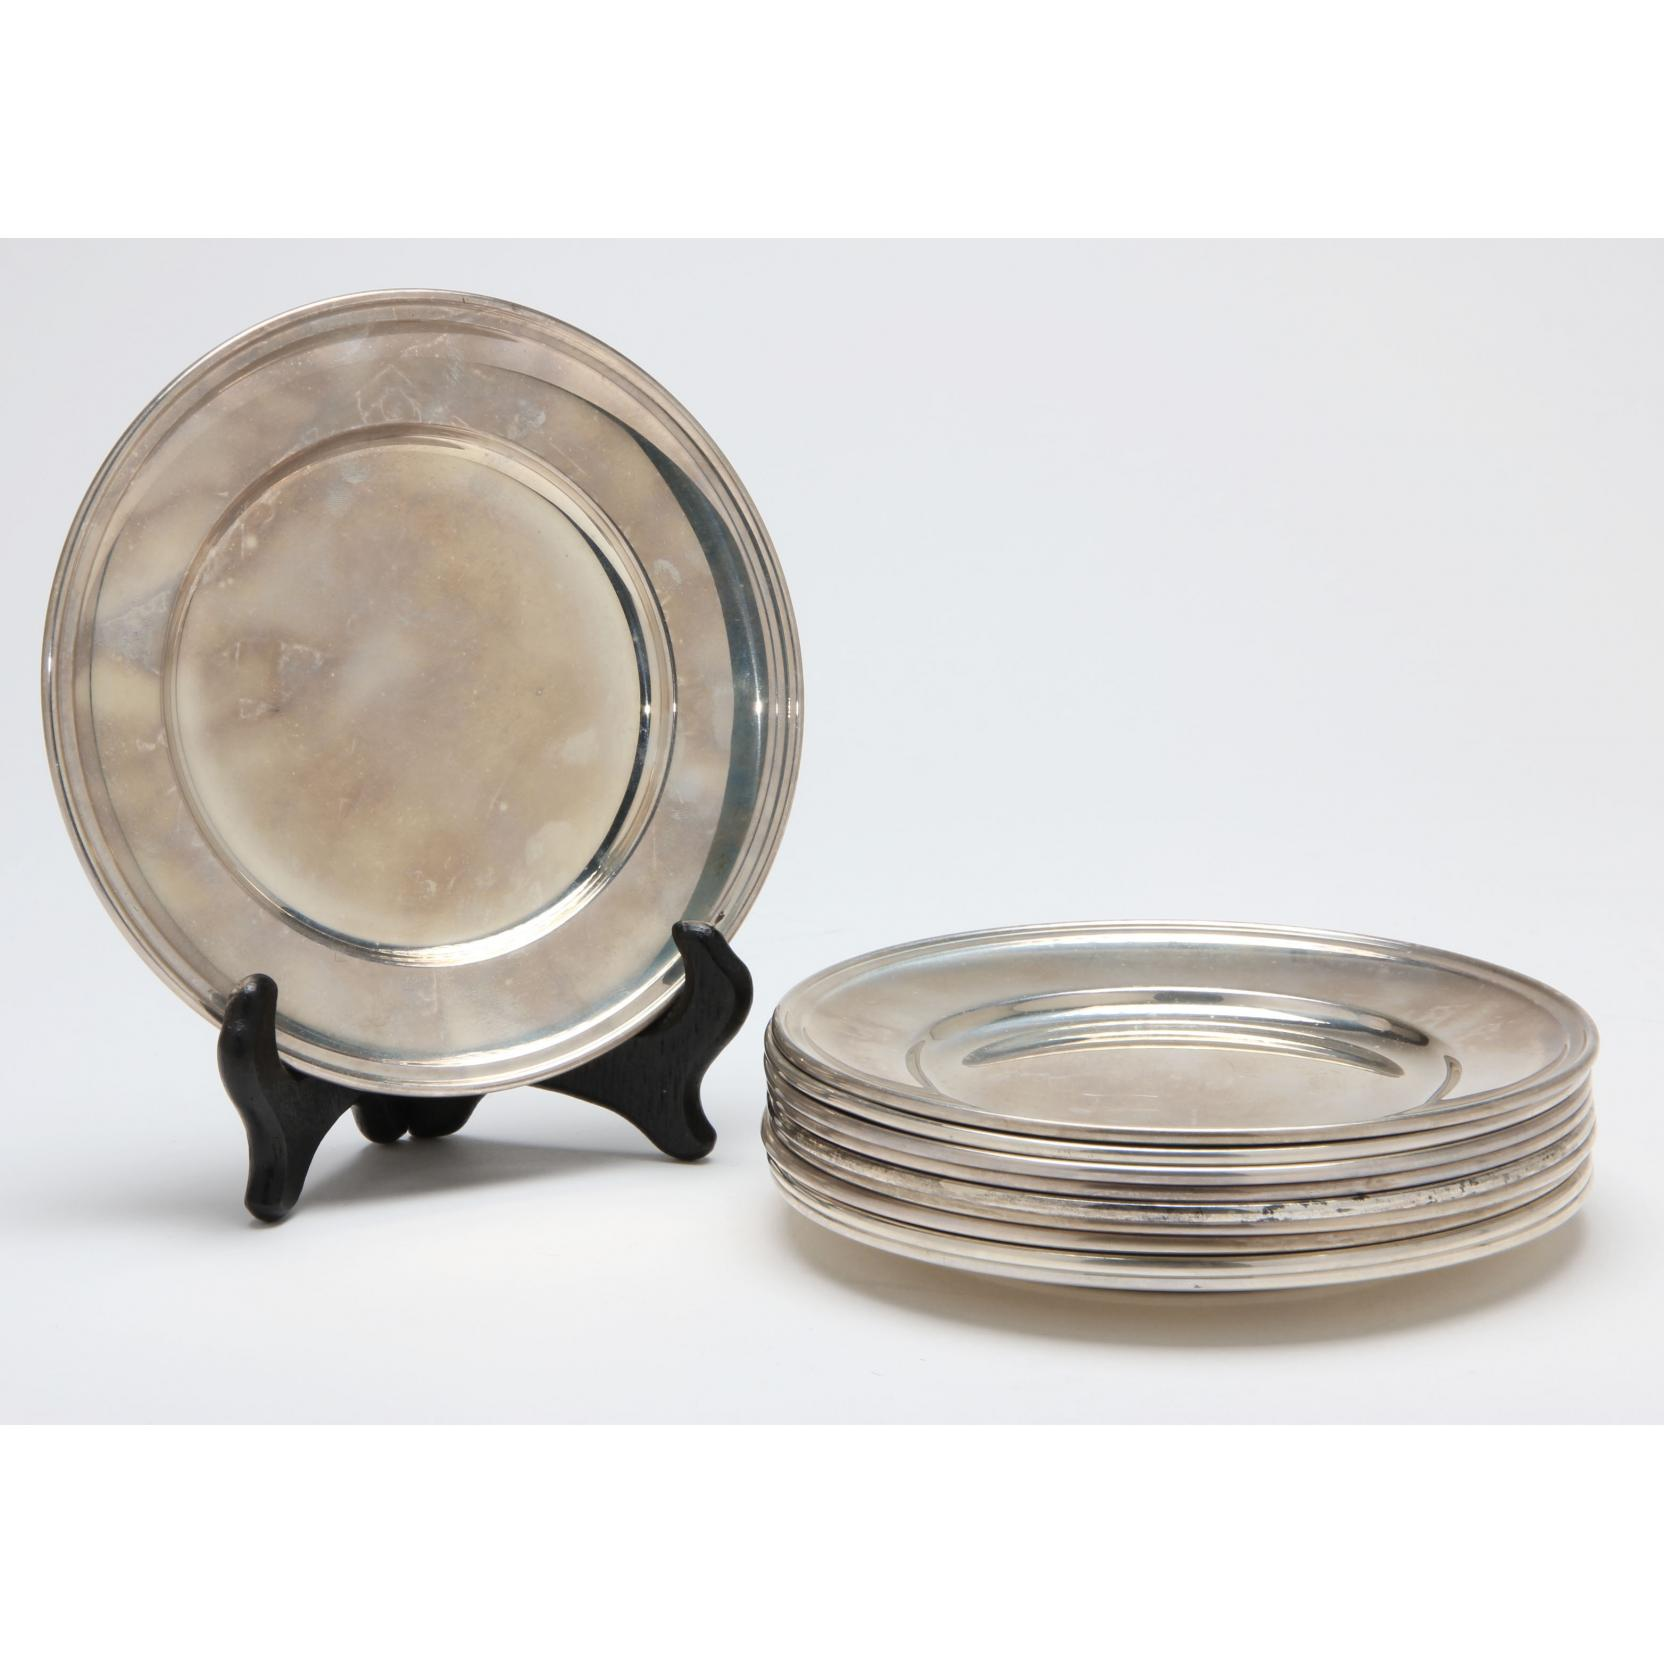 set-of-10-sterling-silver-bread-plates-by-gorham